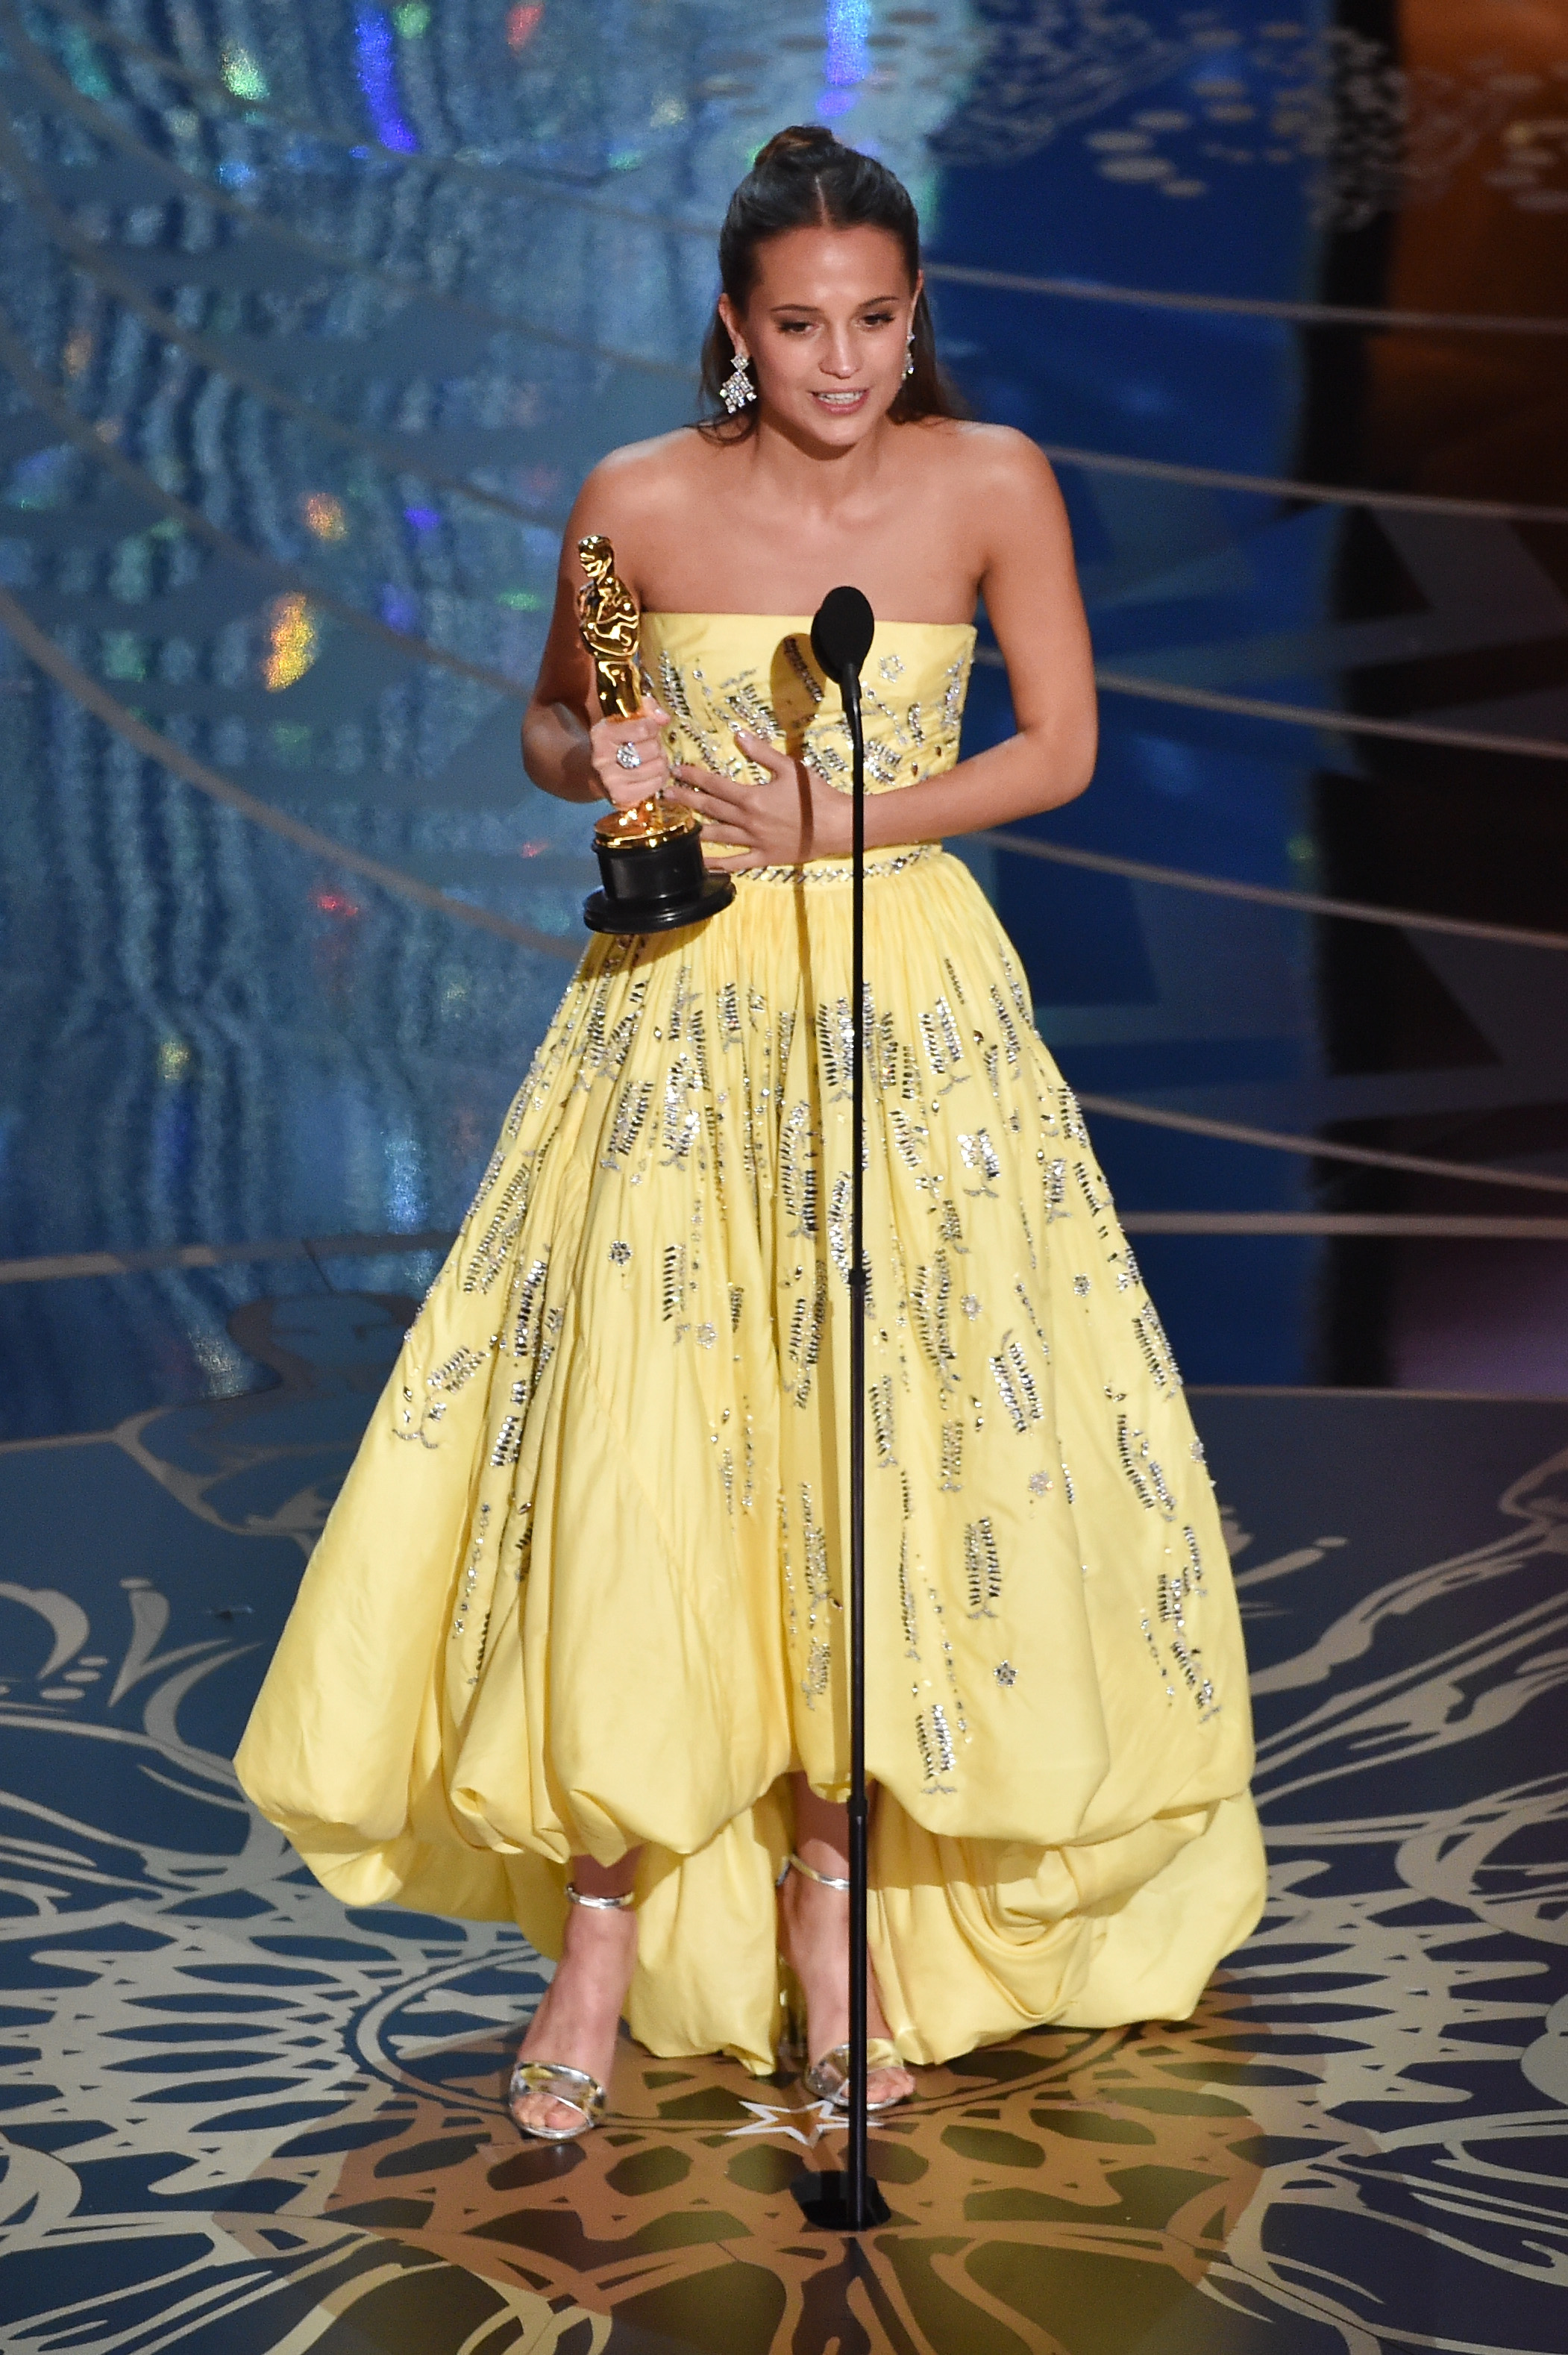 Alicia Vikander Wins 2016 Oscar for Best Supporting Actress